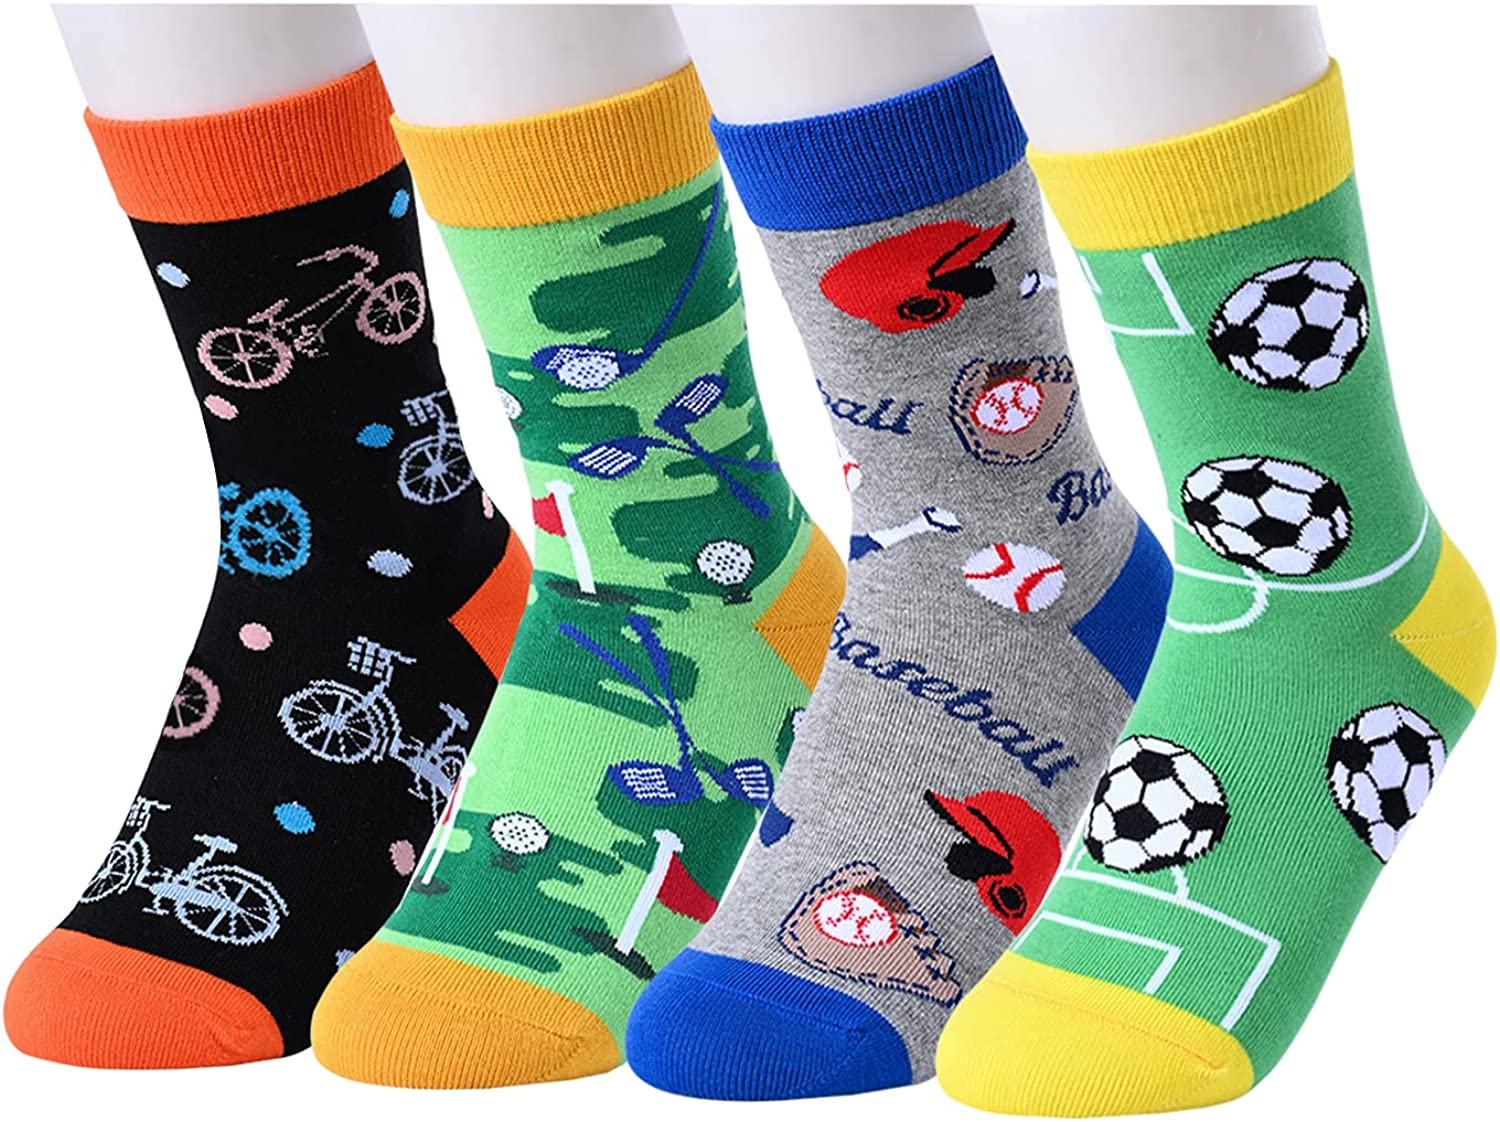 HAPPYPOP Gifts for Teenage Boys Kids Funny Boys Socks 4-10 Years Old Space Sports Animal Gift Box